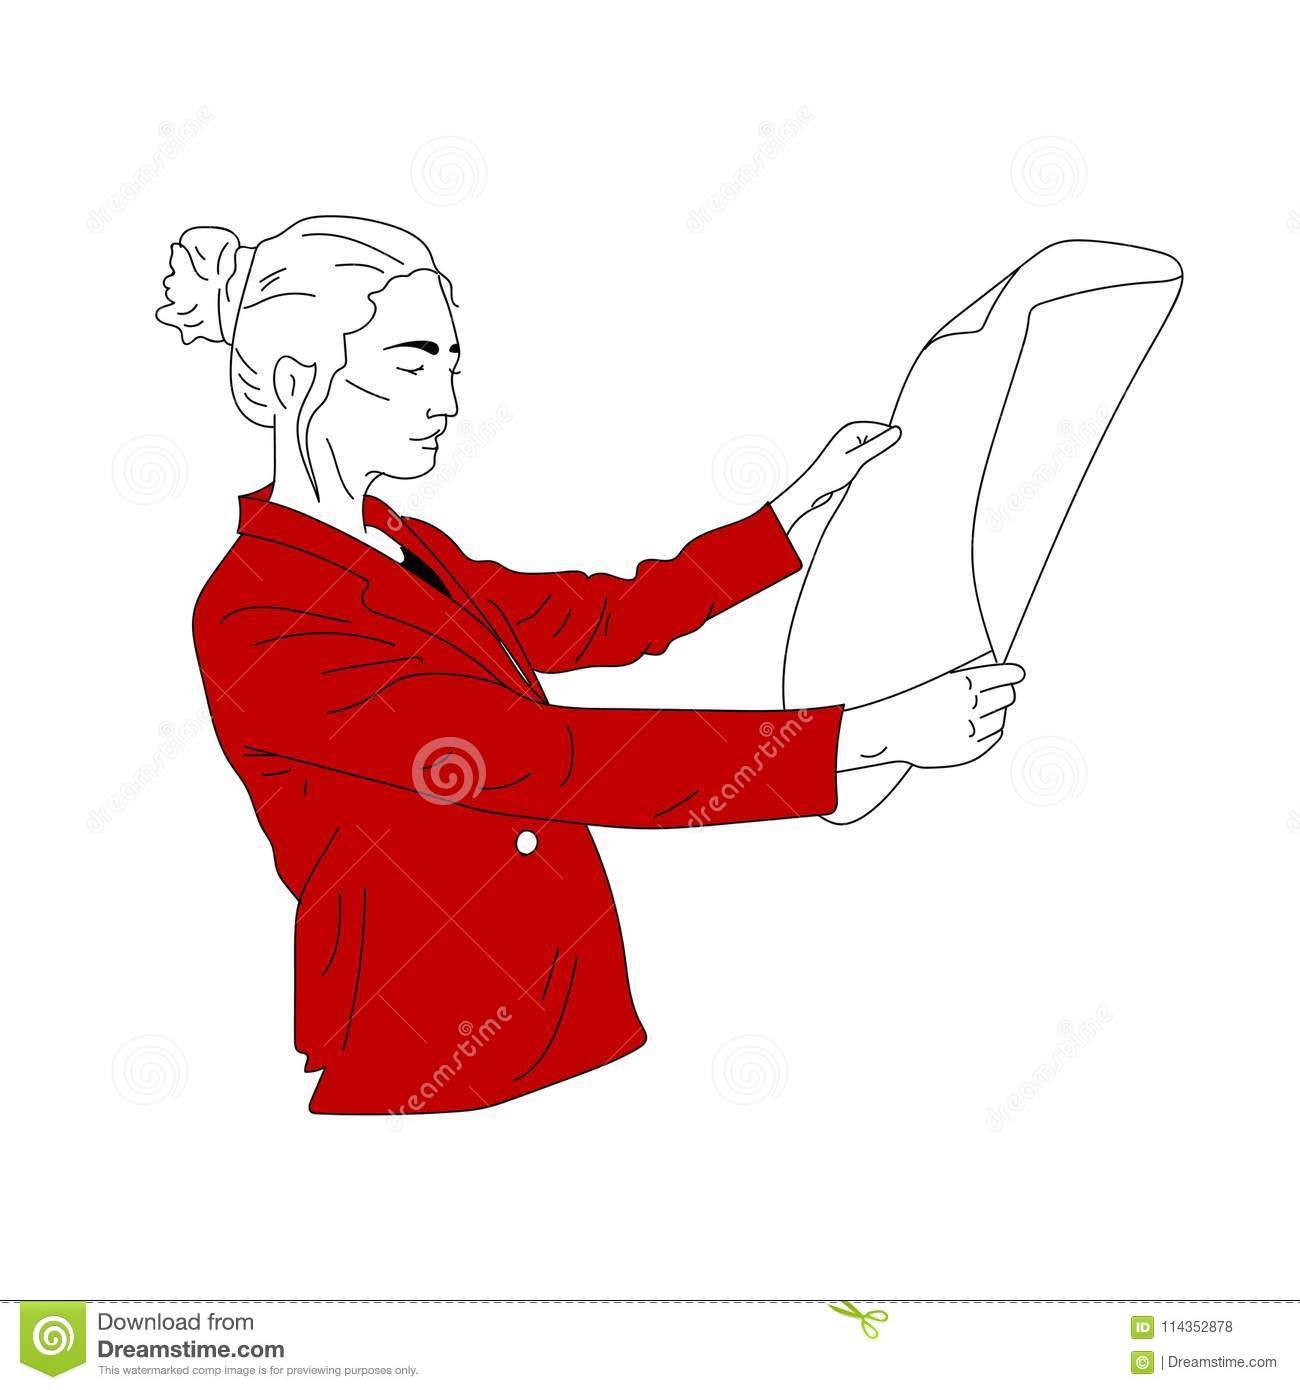 A business woman in a red jacket looks at the document, drawings, sketches.